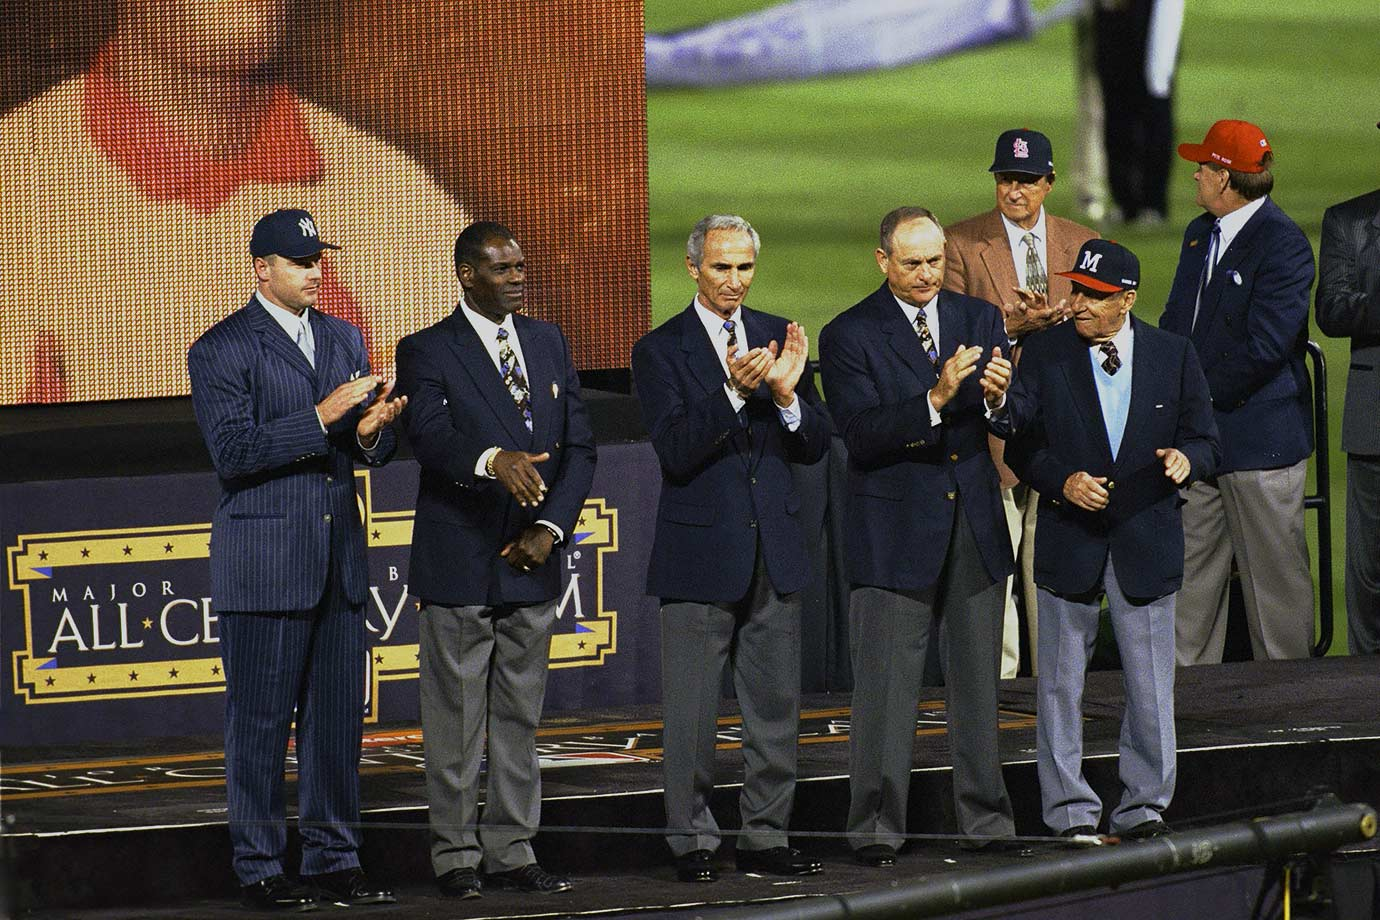 Oct. 24, 1999 — MLB All Century Team (World Series, Game 2)